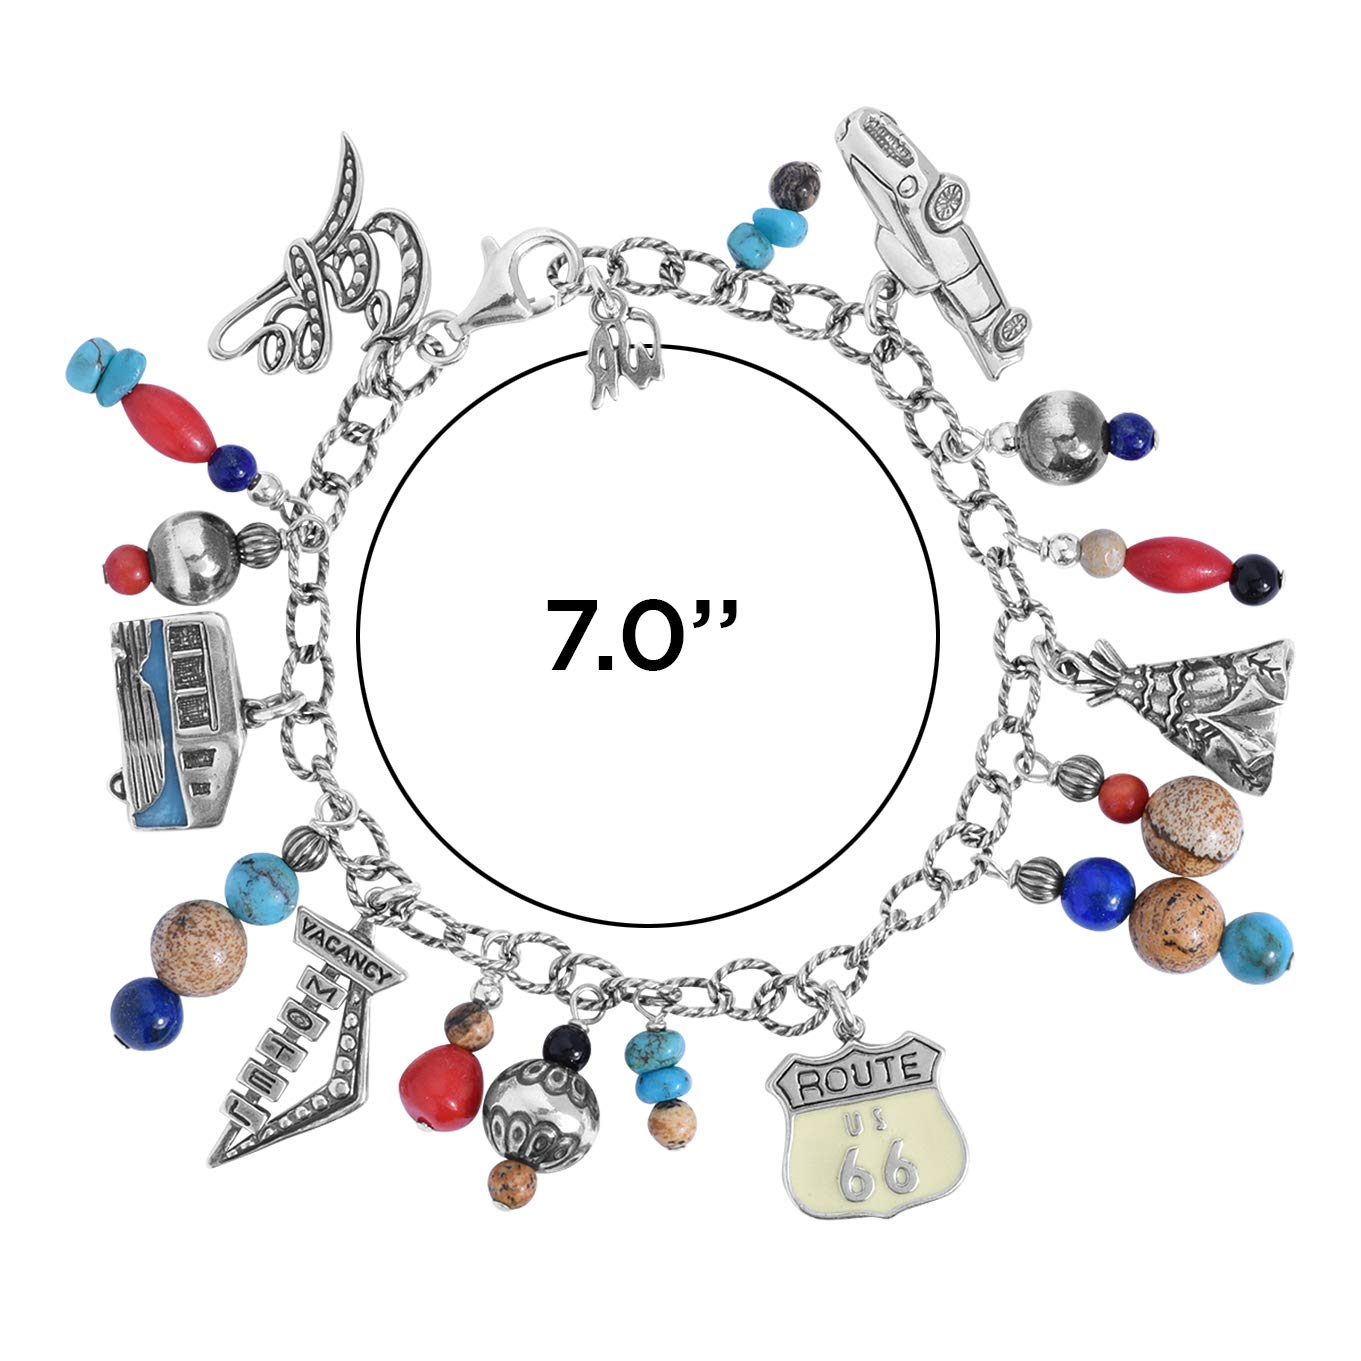 Sterling Silver Route 66 Multicolor Semi-Precious Bead Charm Chain Bracelet, Average (Fits 6-3/8'' to 6-3/4'') by American West (Image #4)